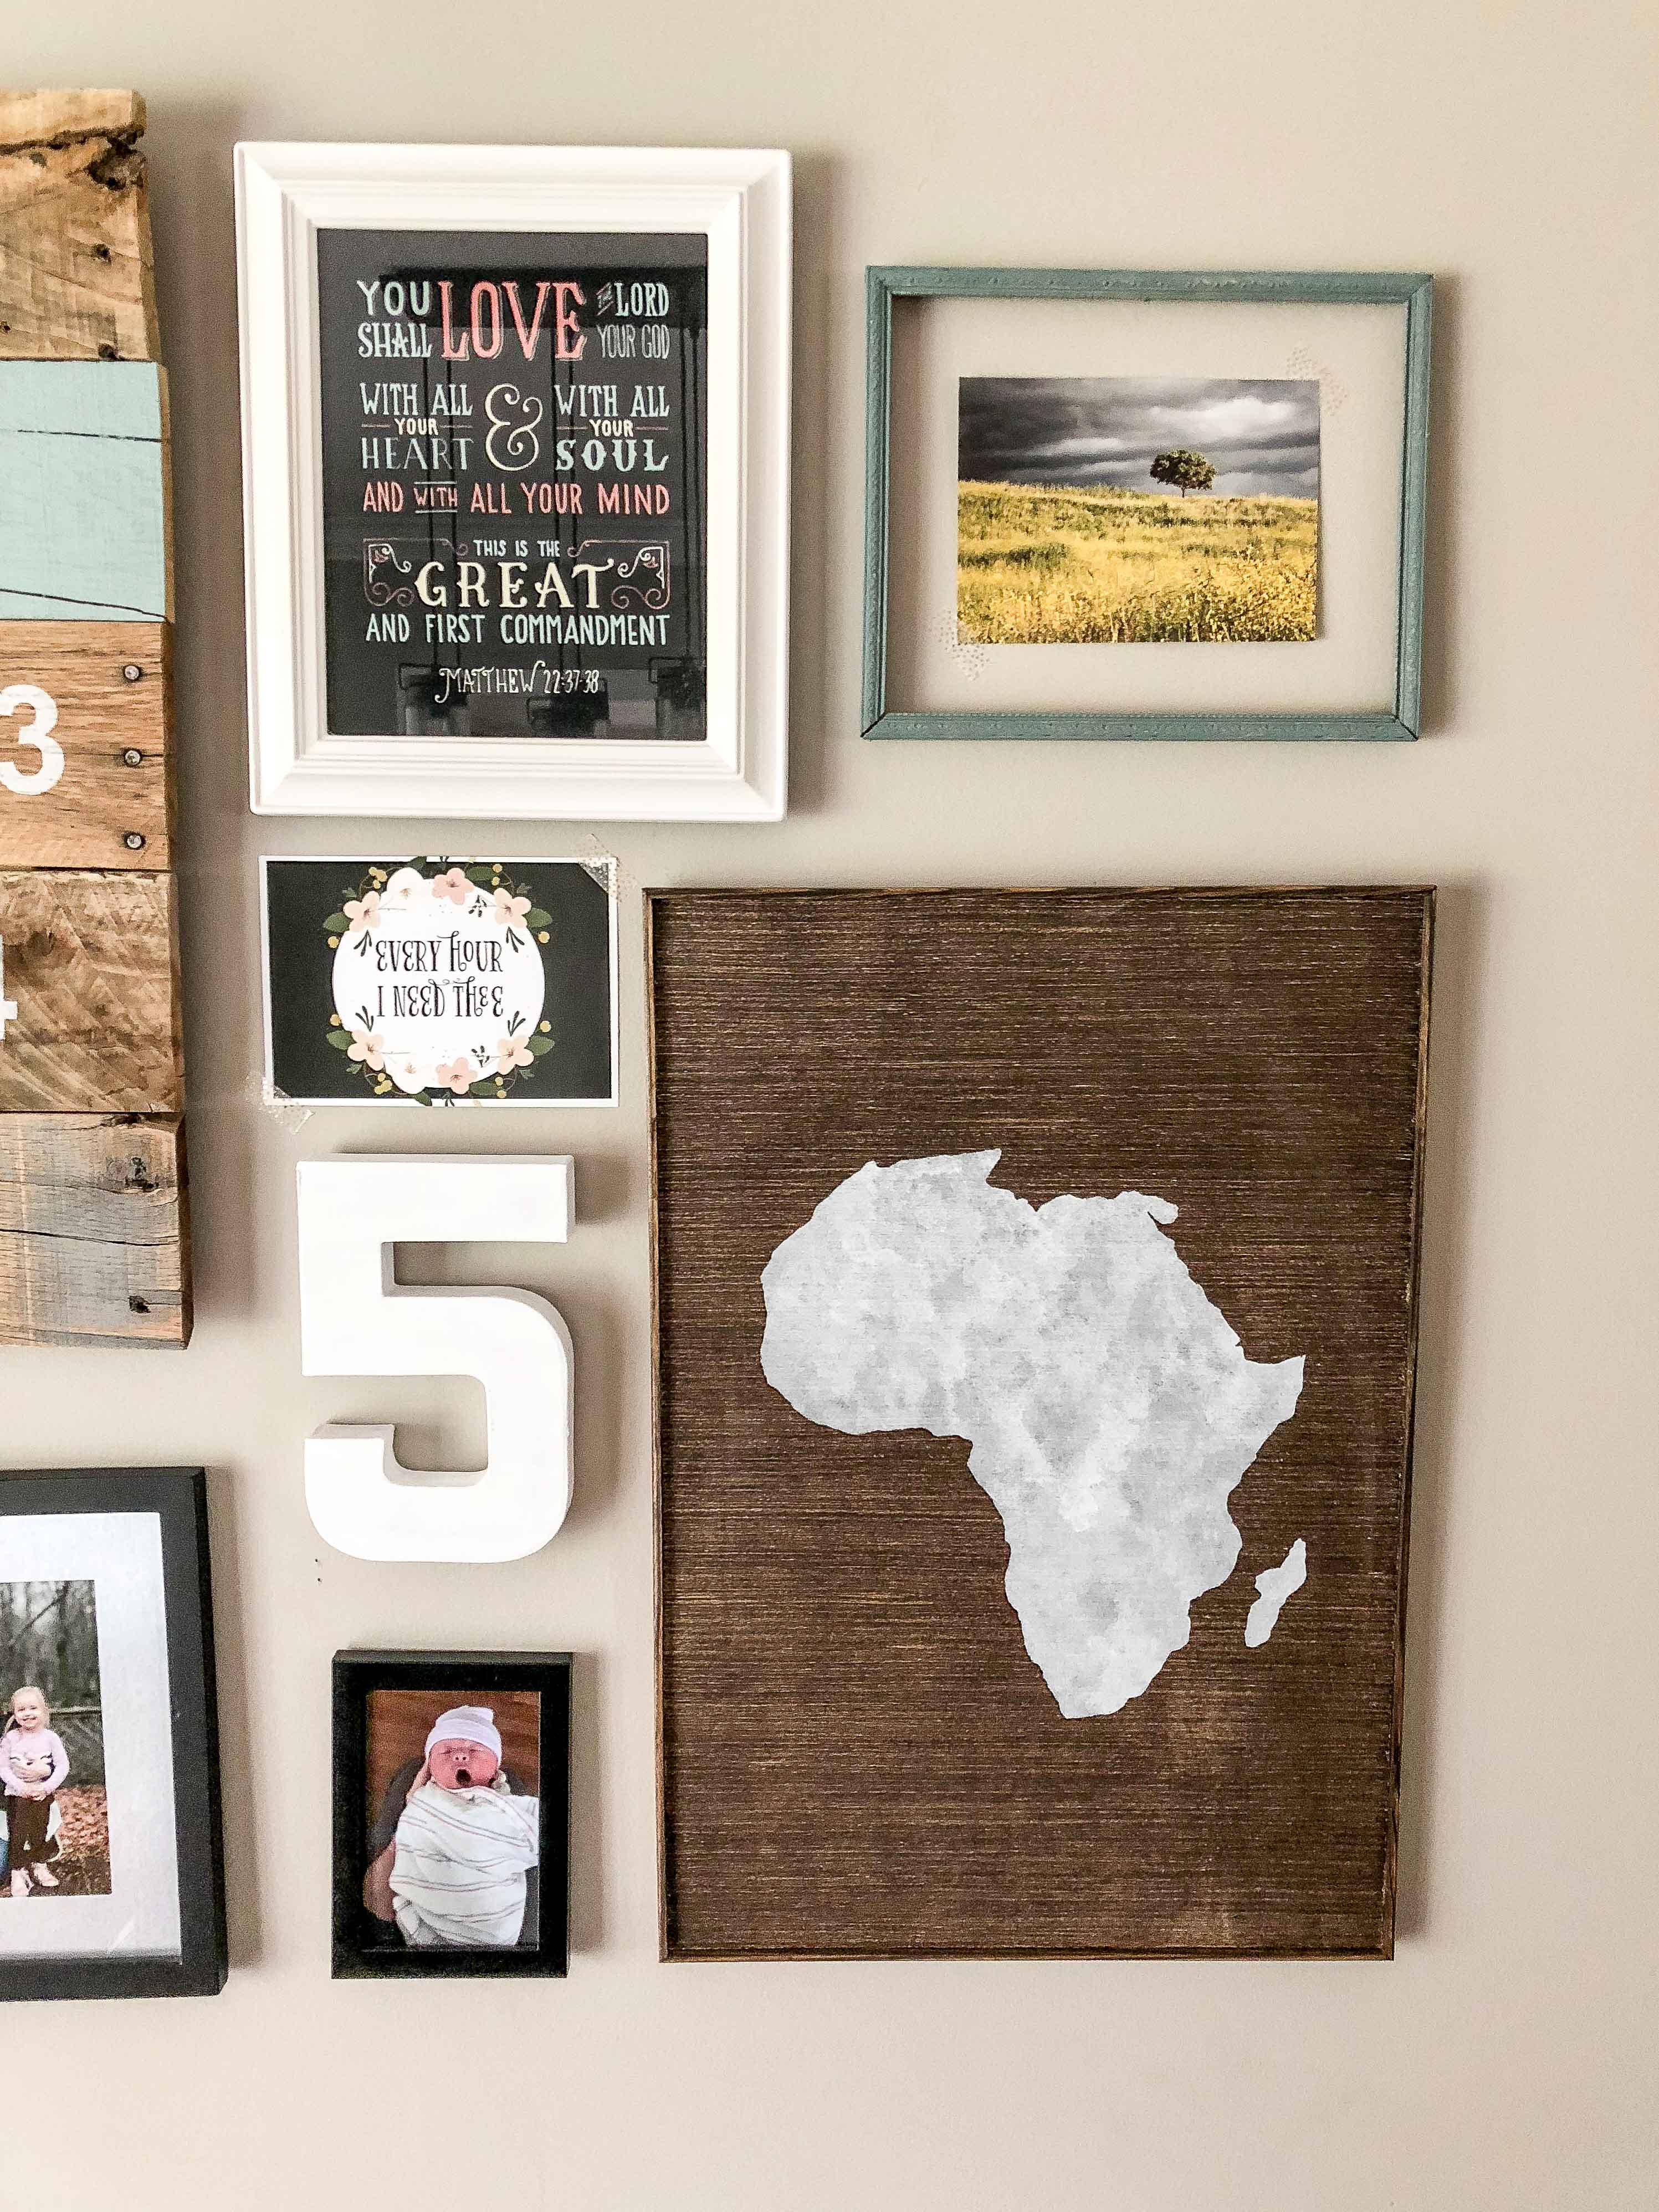 & Large Framed Wood Print Art Collection | Field Treasure Designs